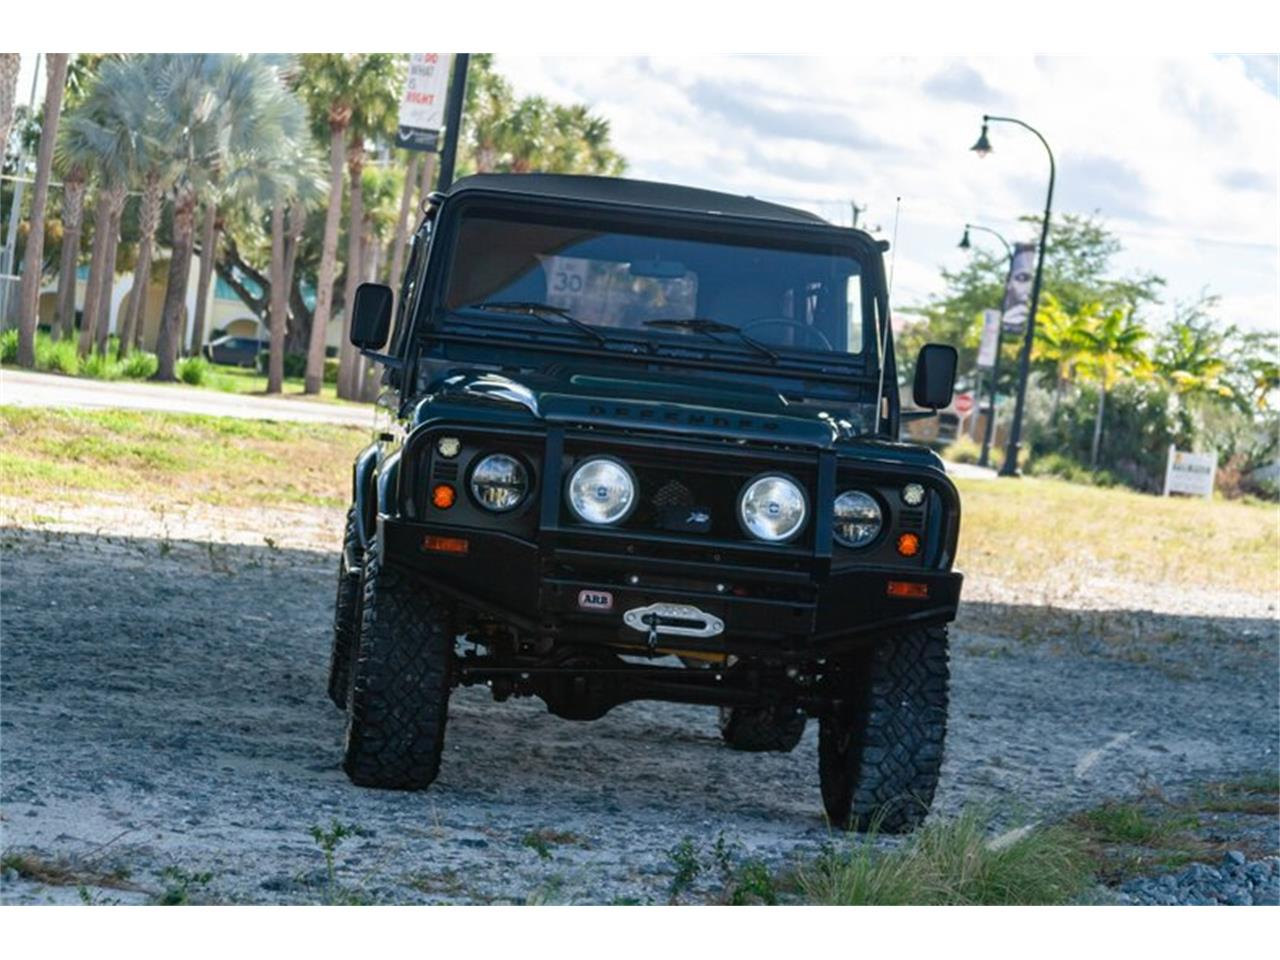 1997 Land Rover Defender for sale in Delray Beach, FL – photo 3